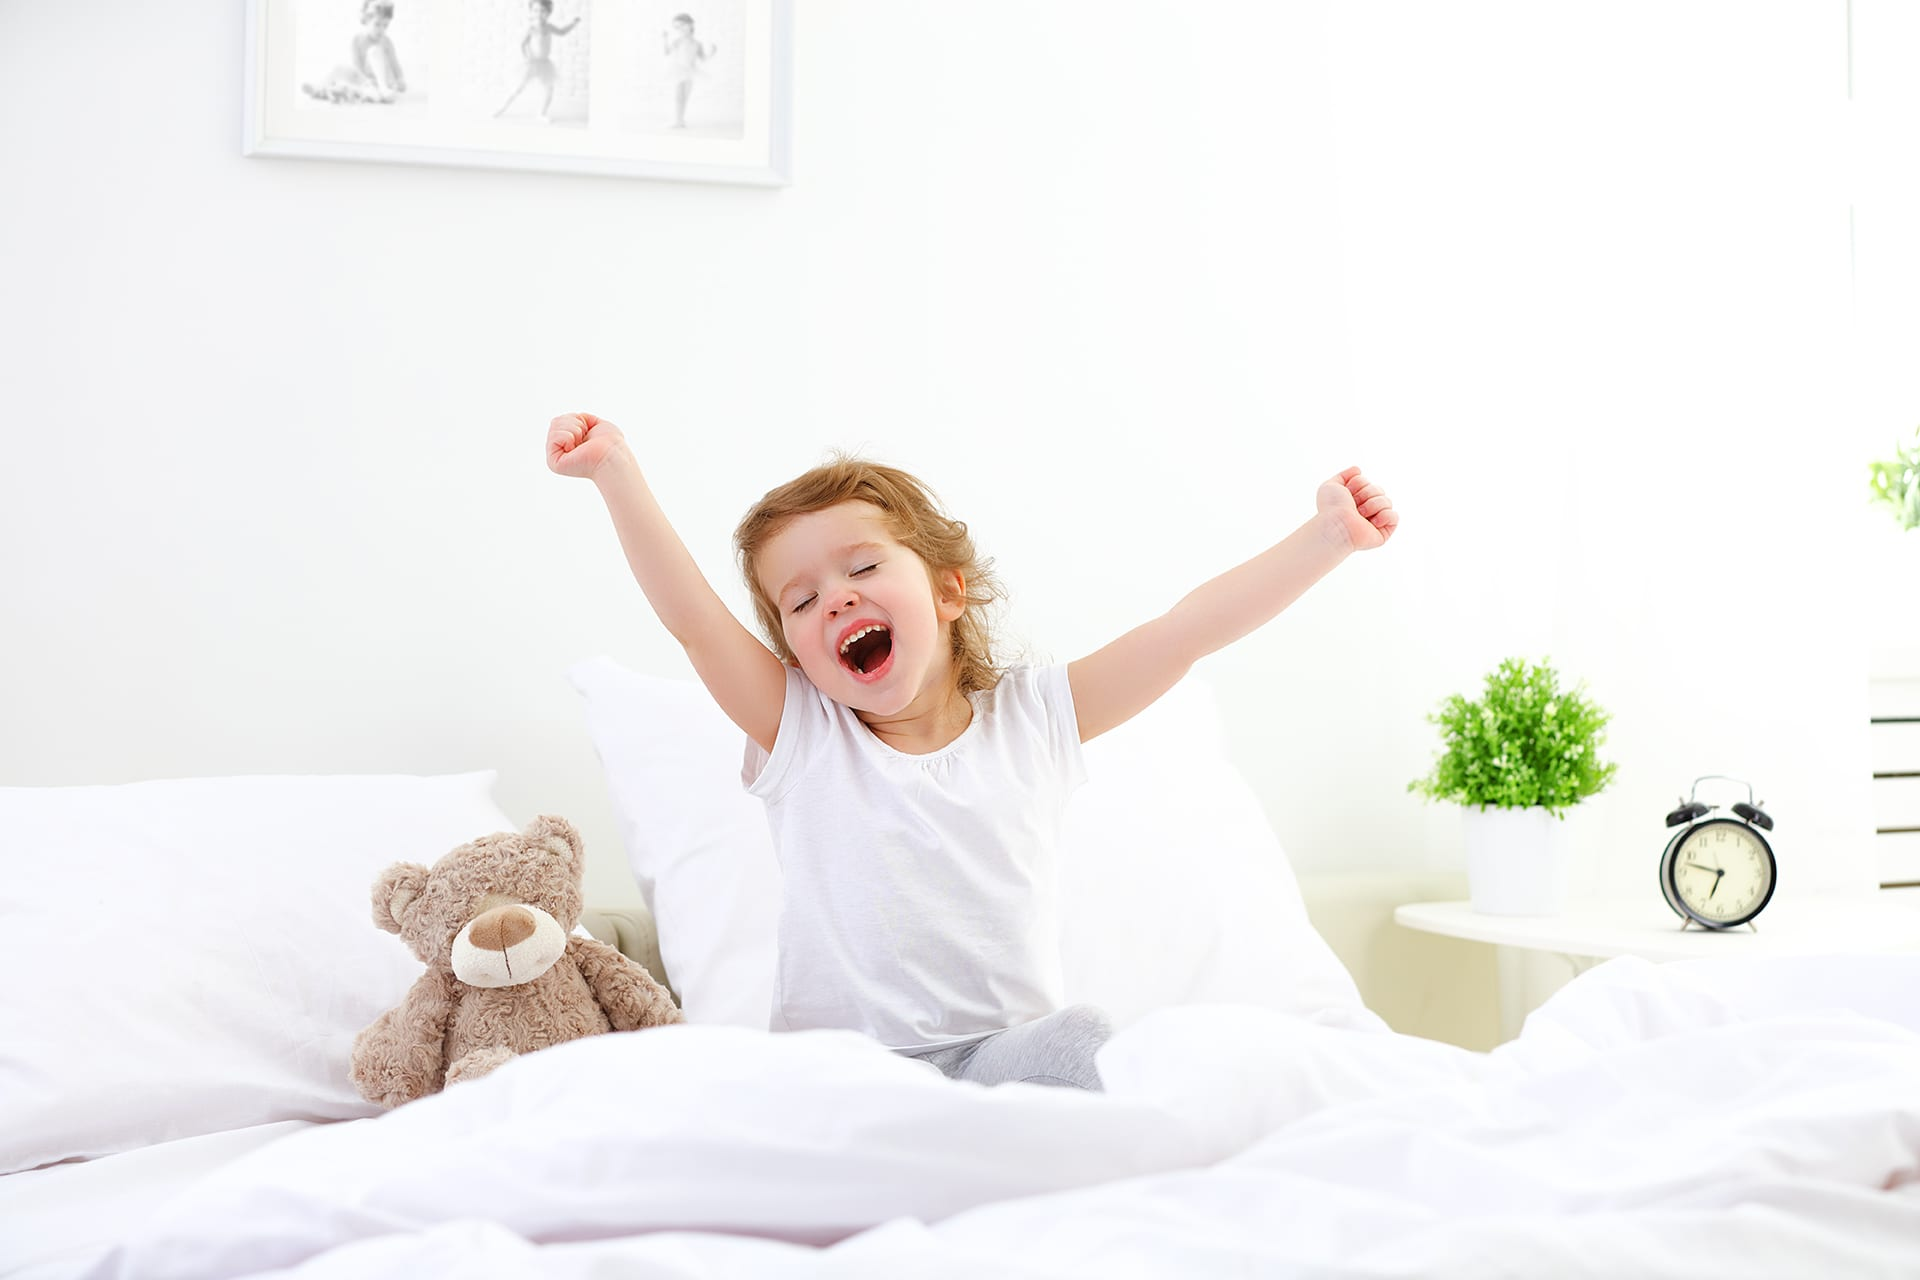 foster care child waking up in bed